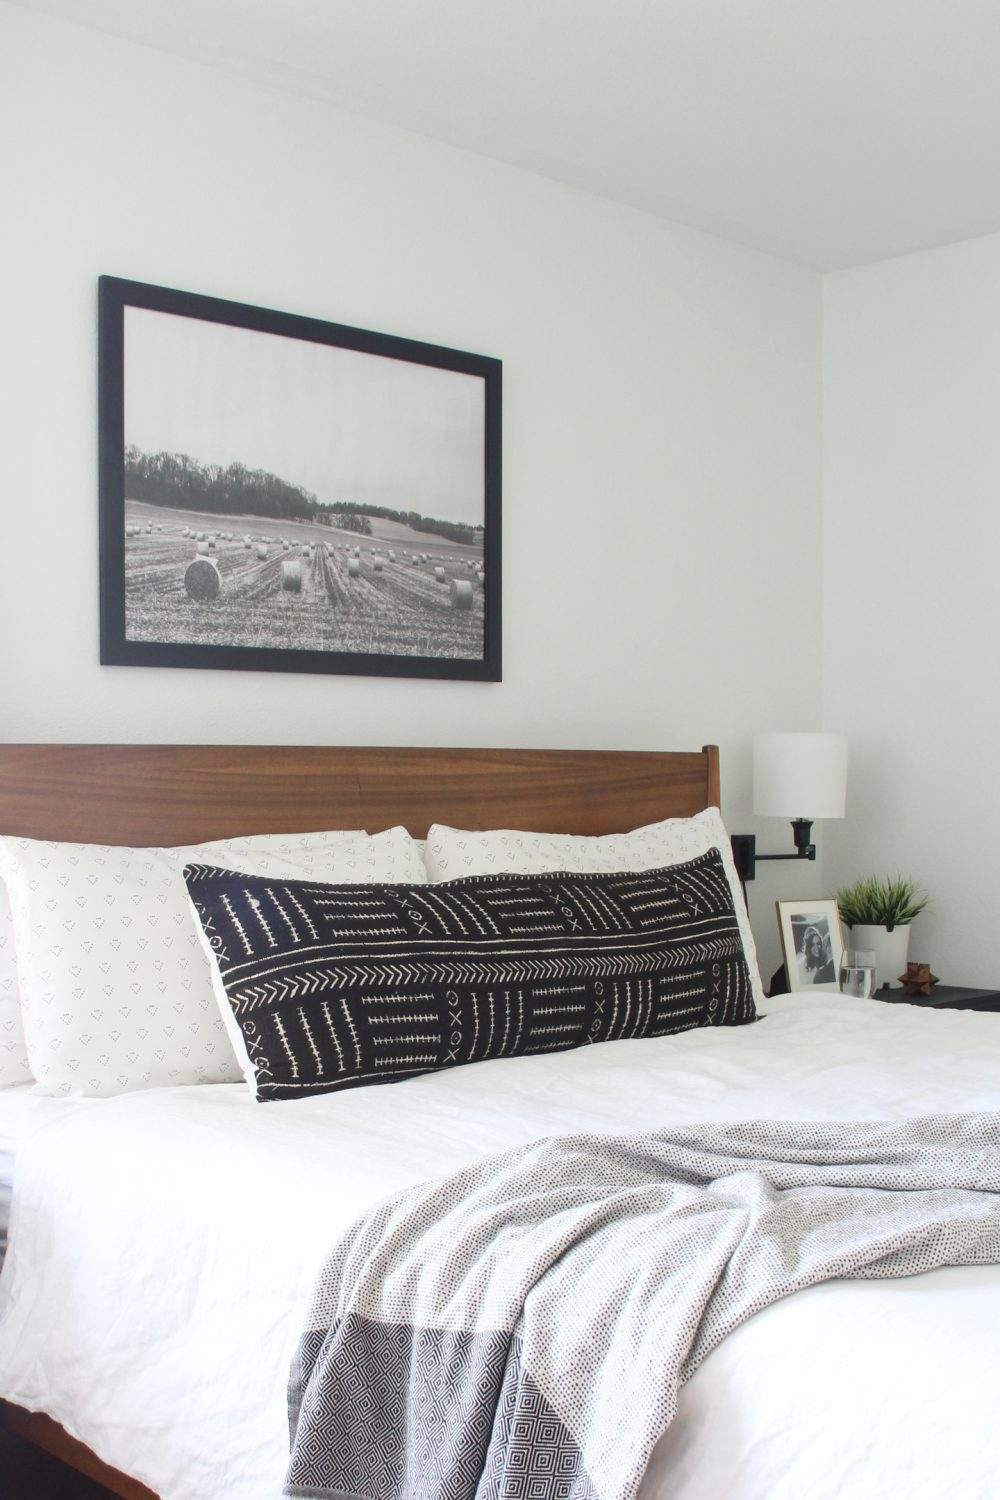 Large art above bed in master bedroom | Melissa Lynch | melissalynch.com